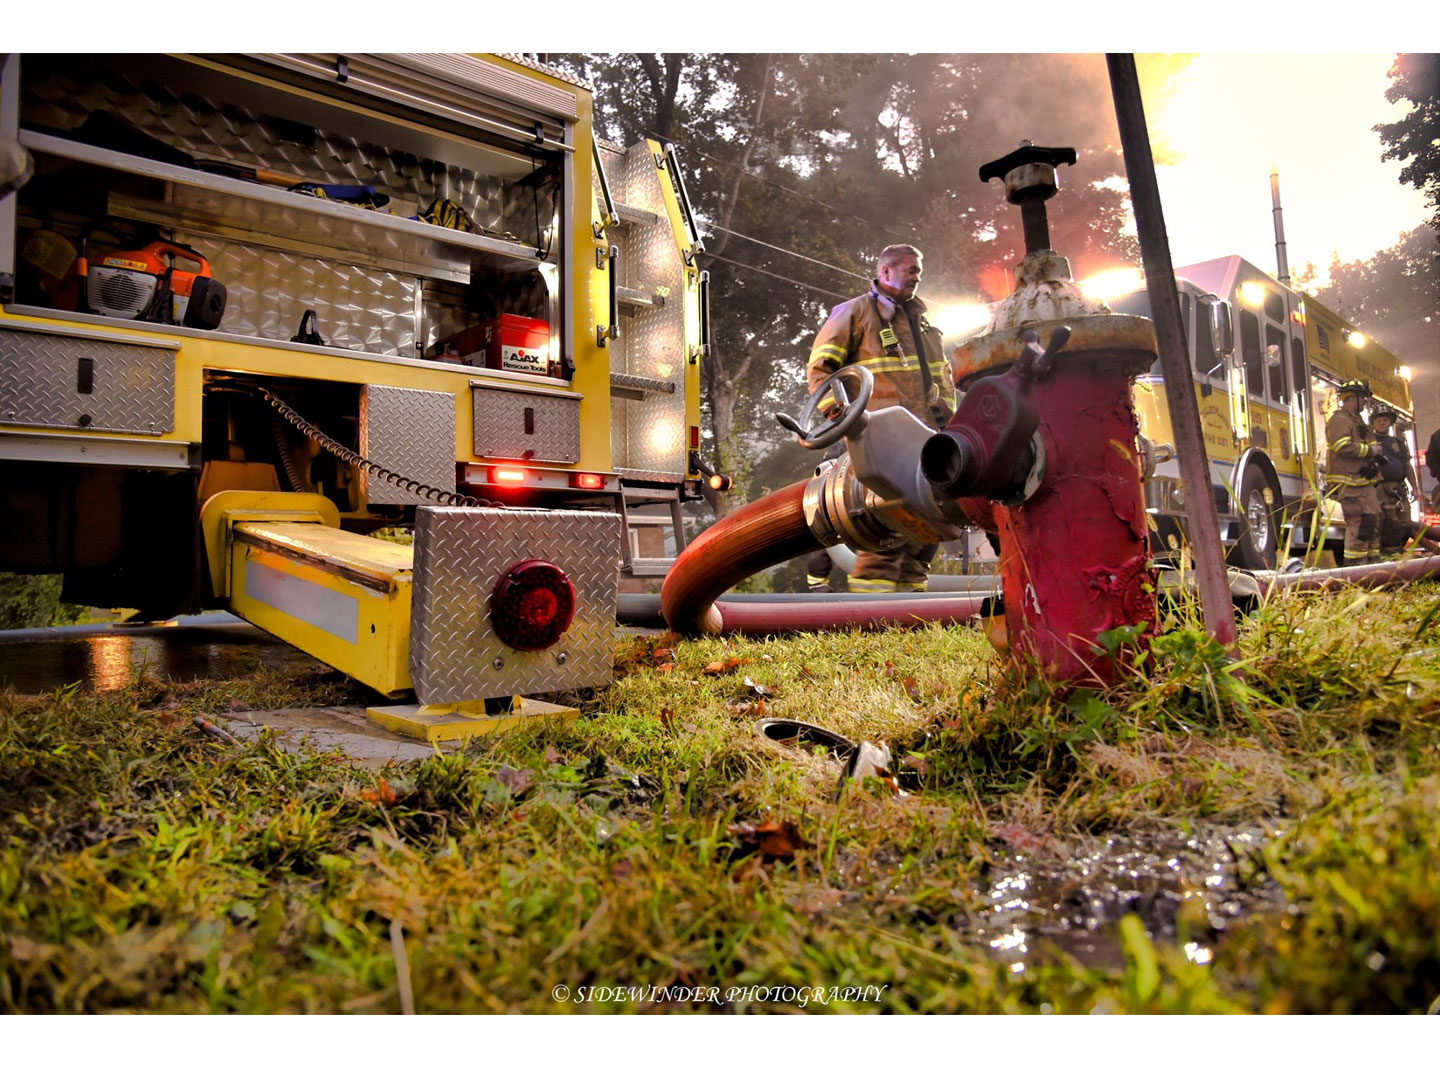 Hydrant hookup and fire apparatus at the scene.